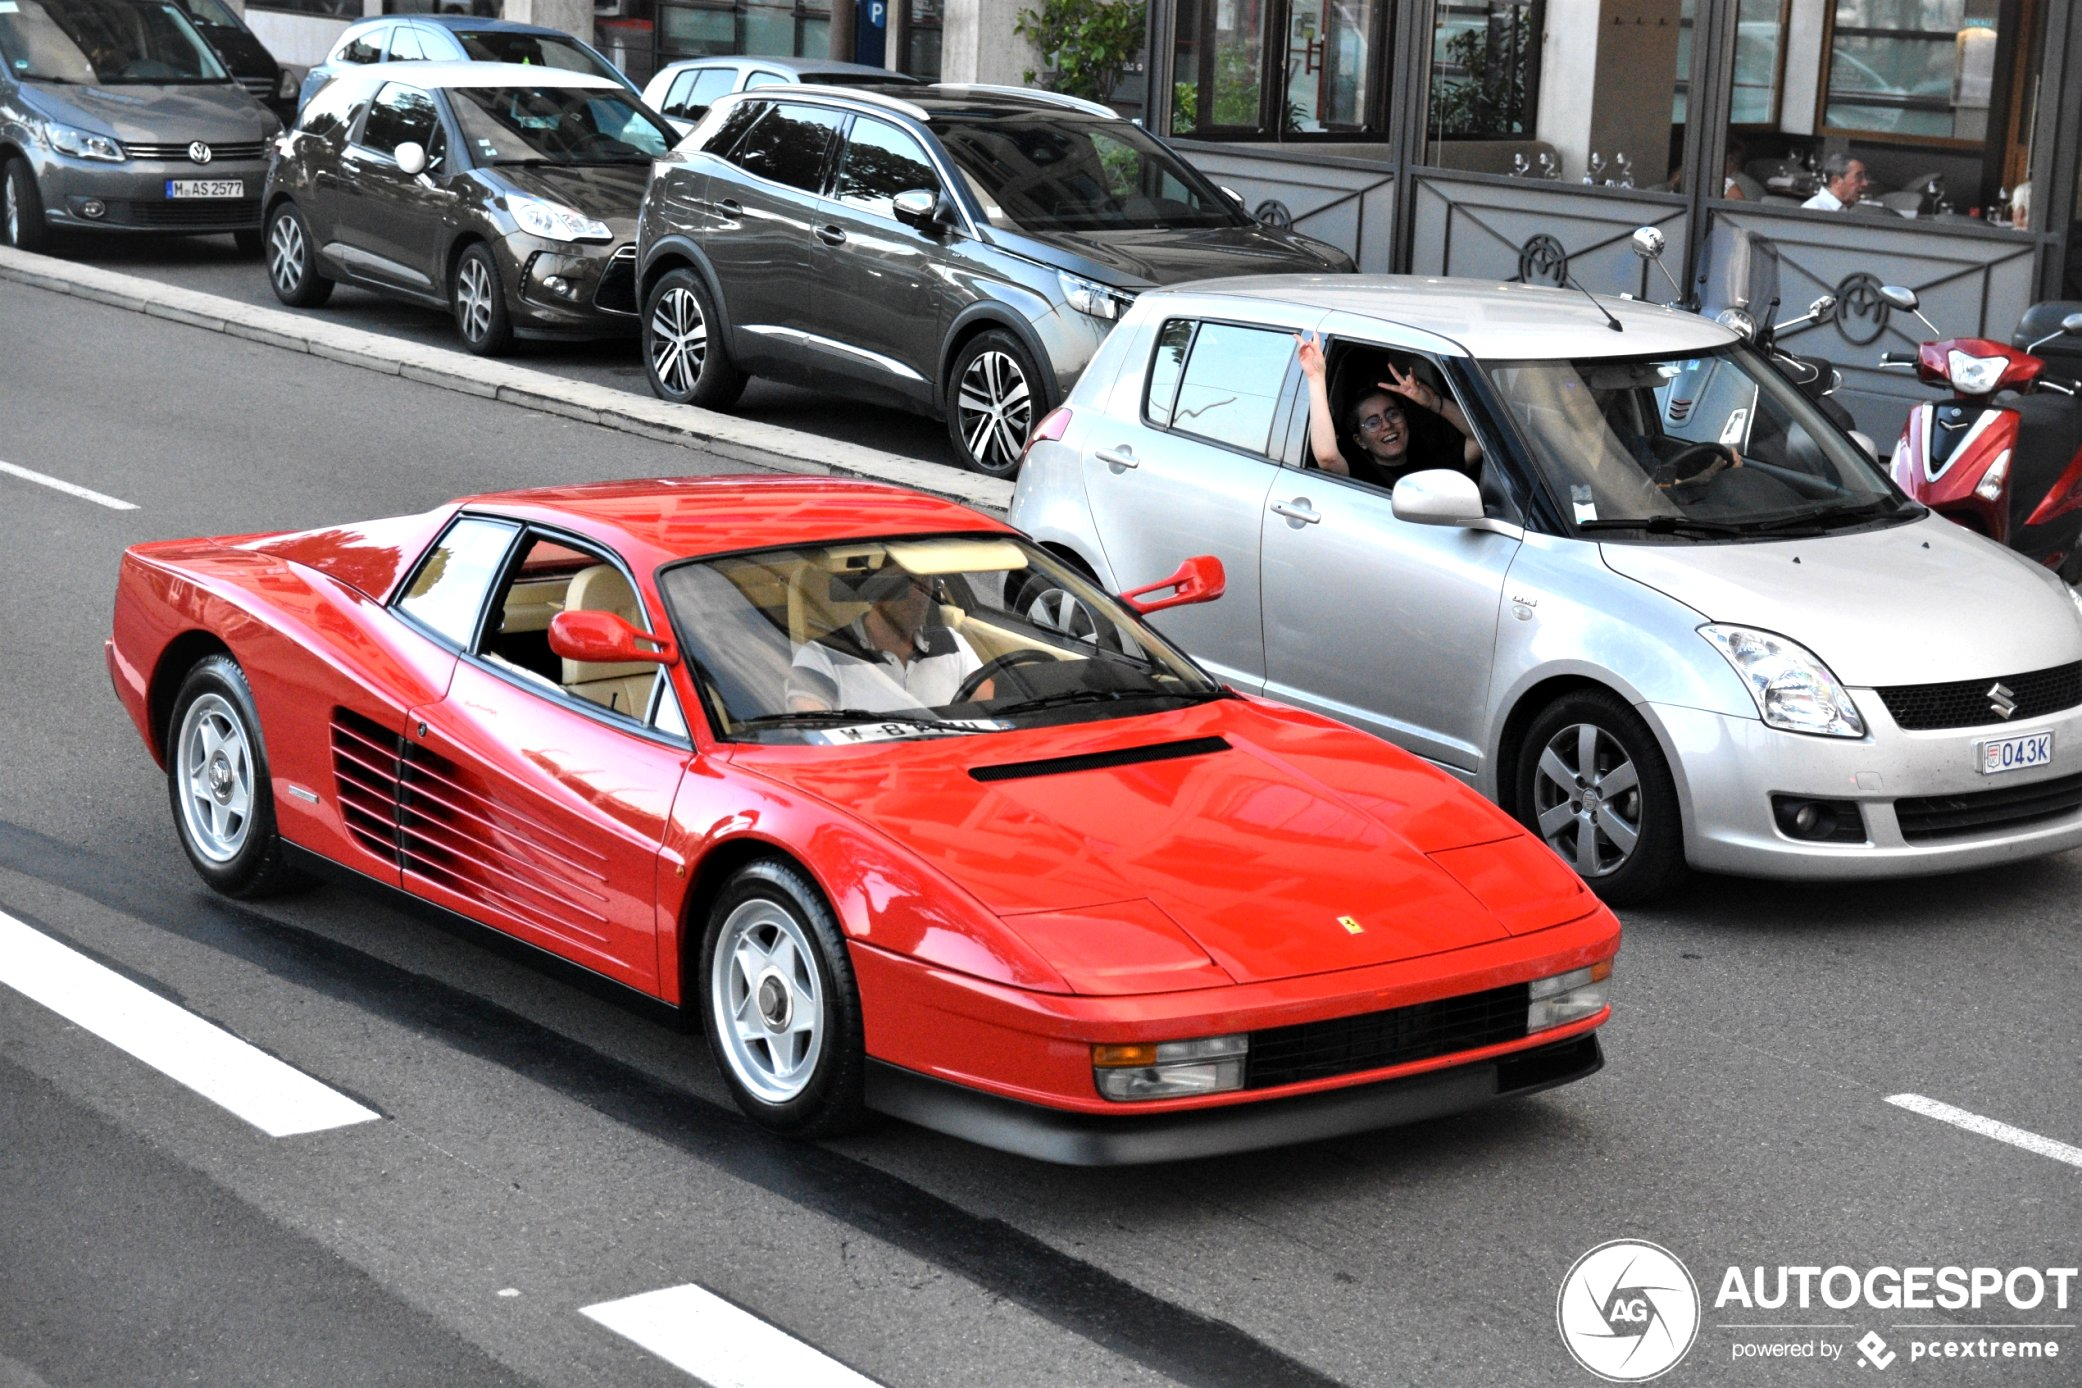 2020 ferrari testarossa Photos